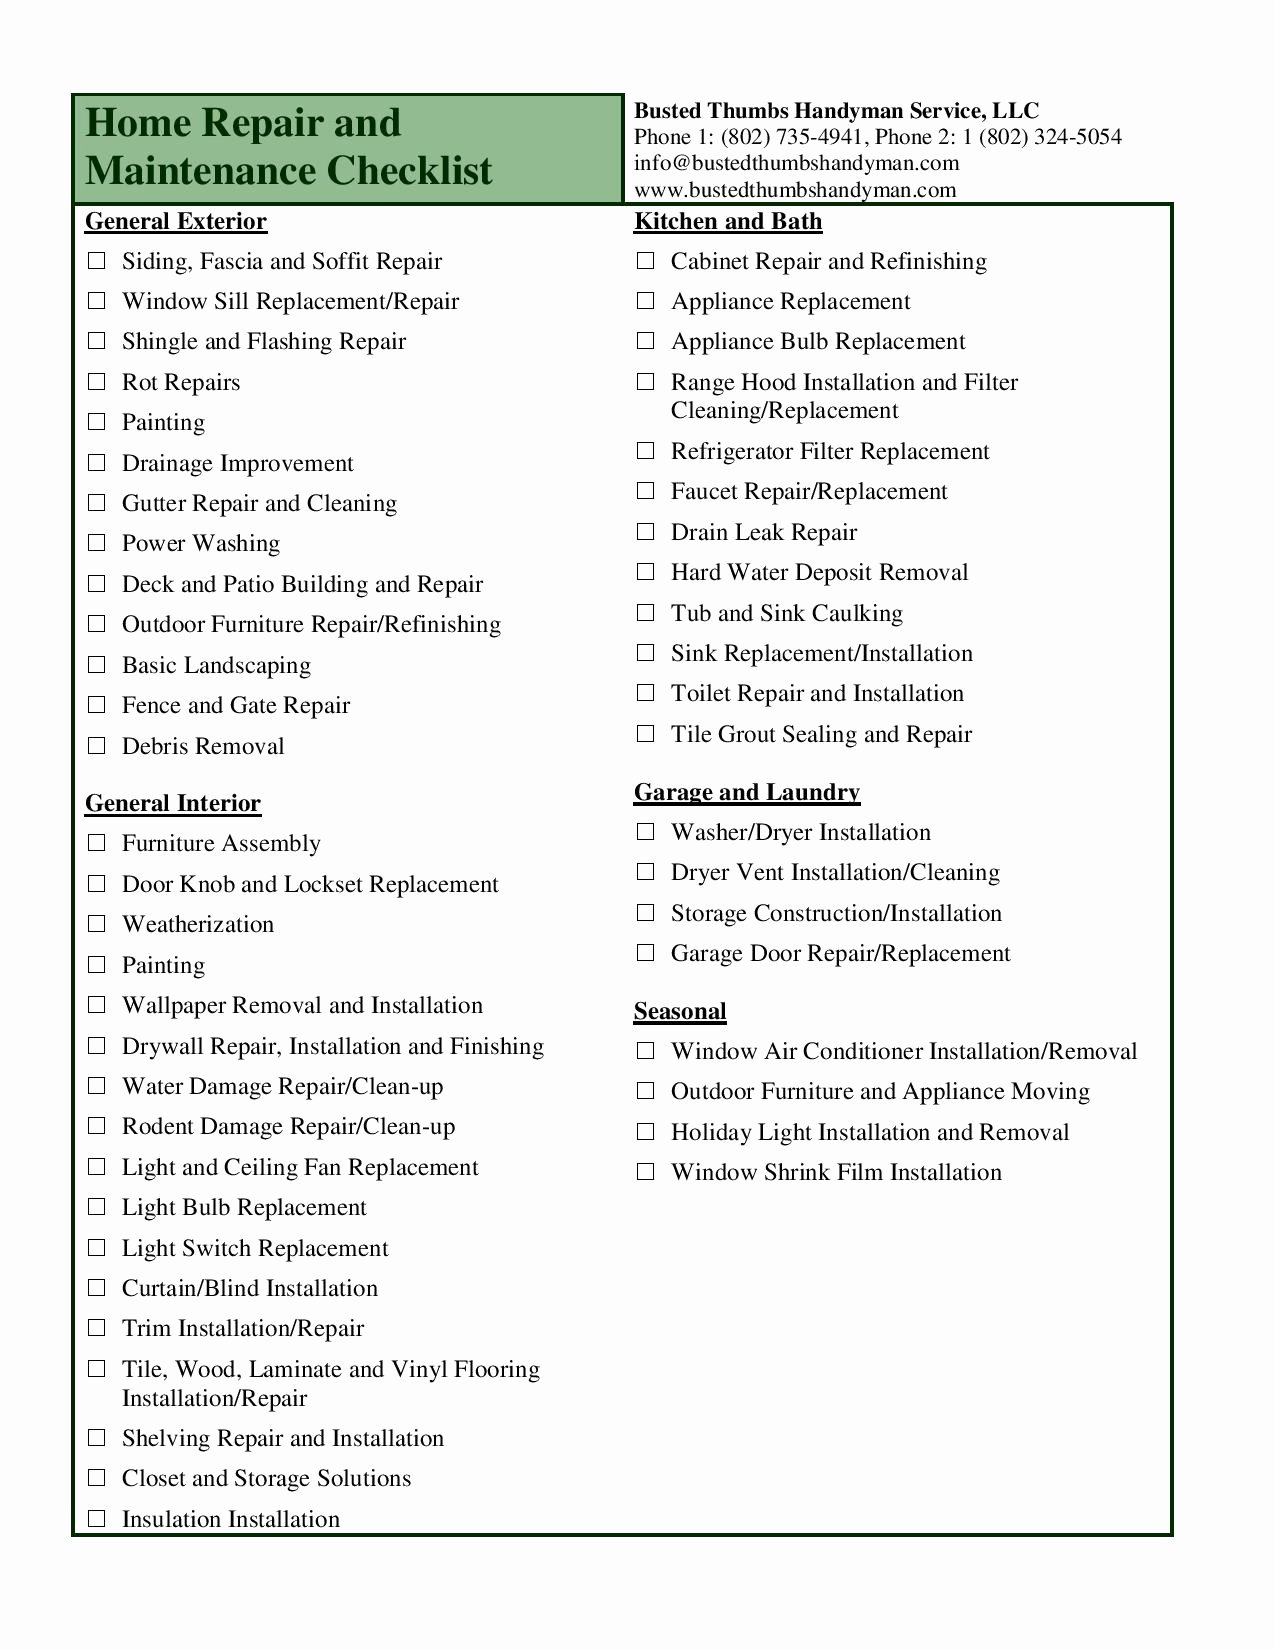 Home Remodeling Checklist Template Bathroom Remodel